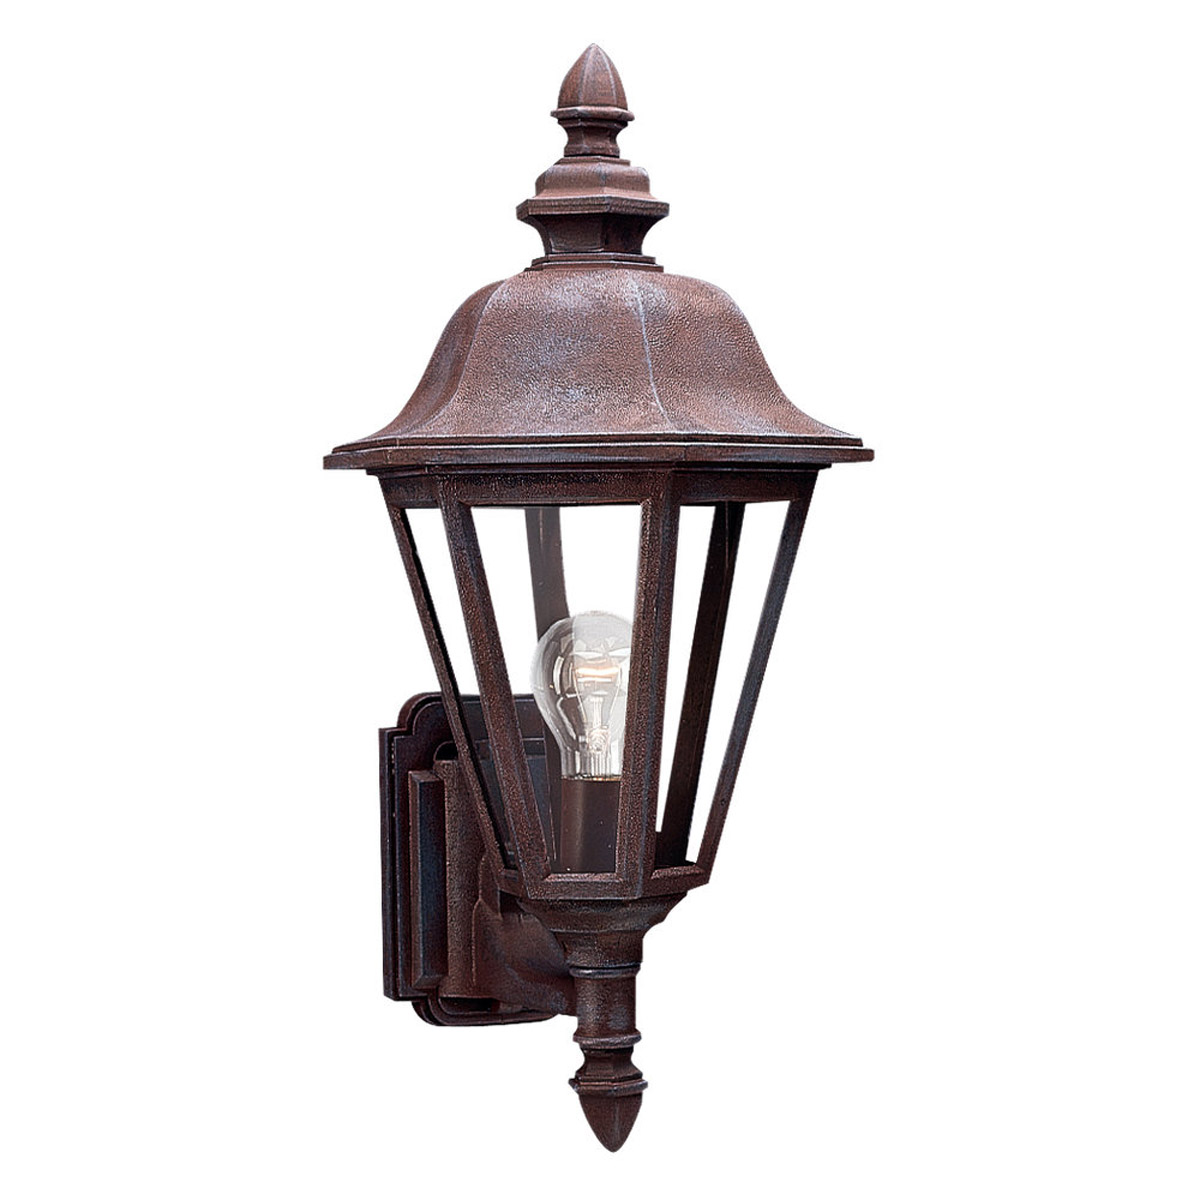 Sea Gull Lighting Brentwood 1 Light Outdoor Wall Lantern in Sienna 8824-26 photo